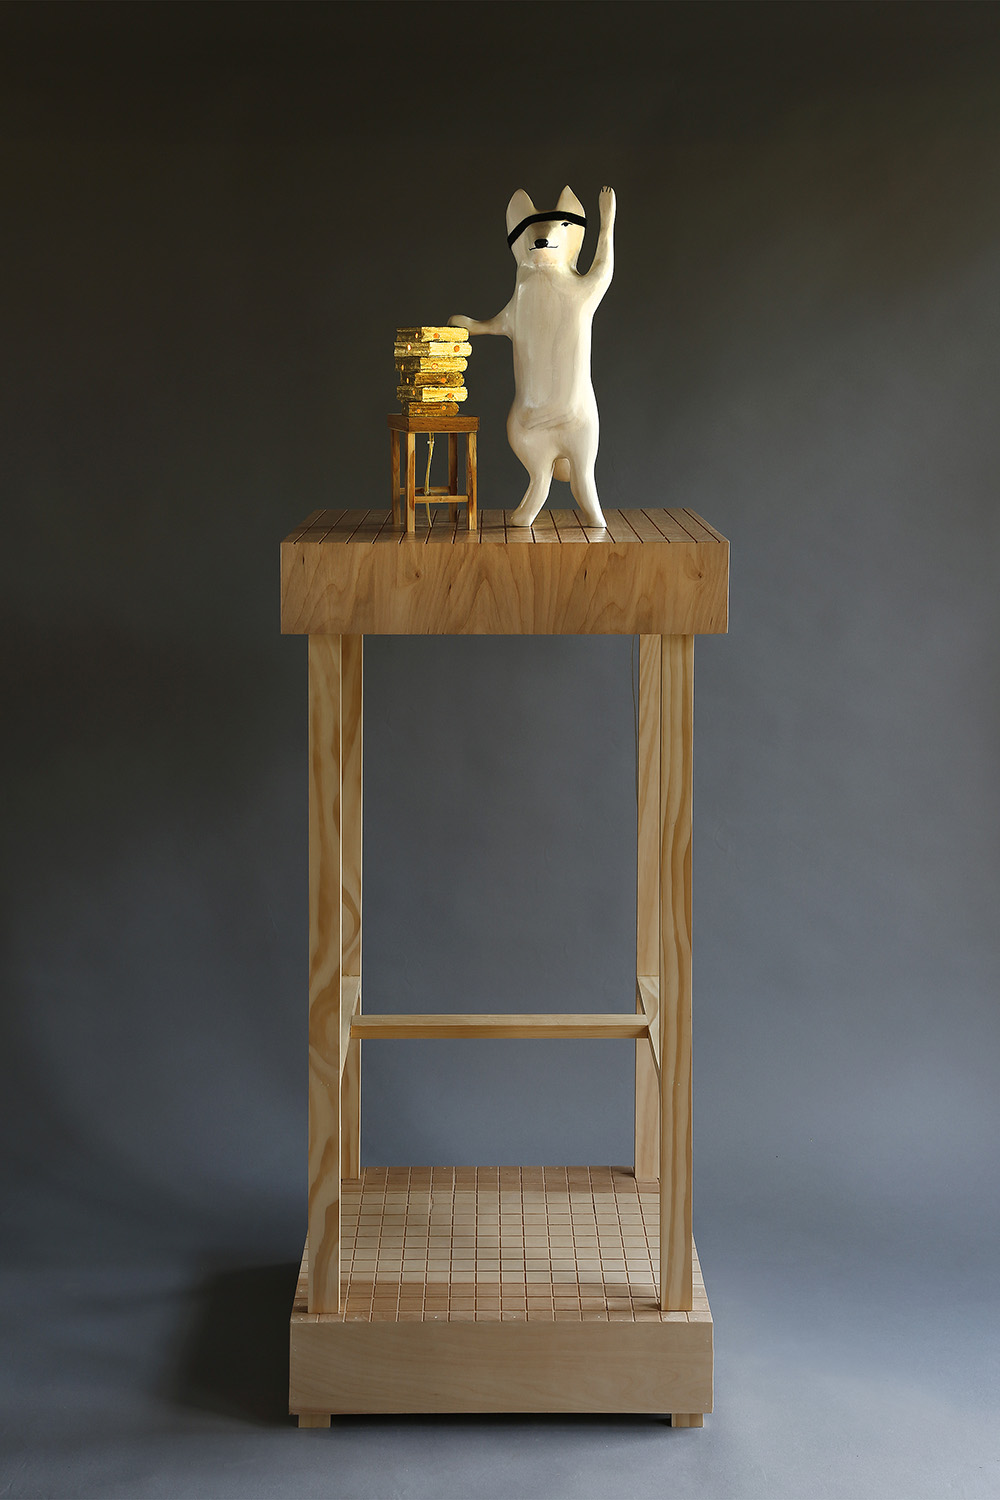 """Fox Swearing on a Stack of Holey Books"", 62"" h x 21"" w x 18"" d; wood, stain, plexiglass, gold leaf, felt, LED light; © Tom Gormally 2019"